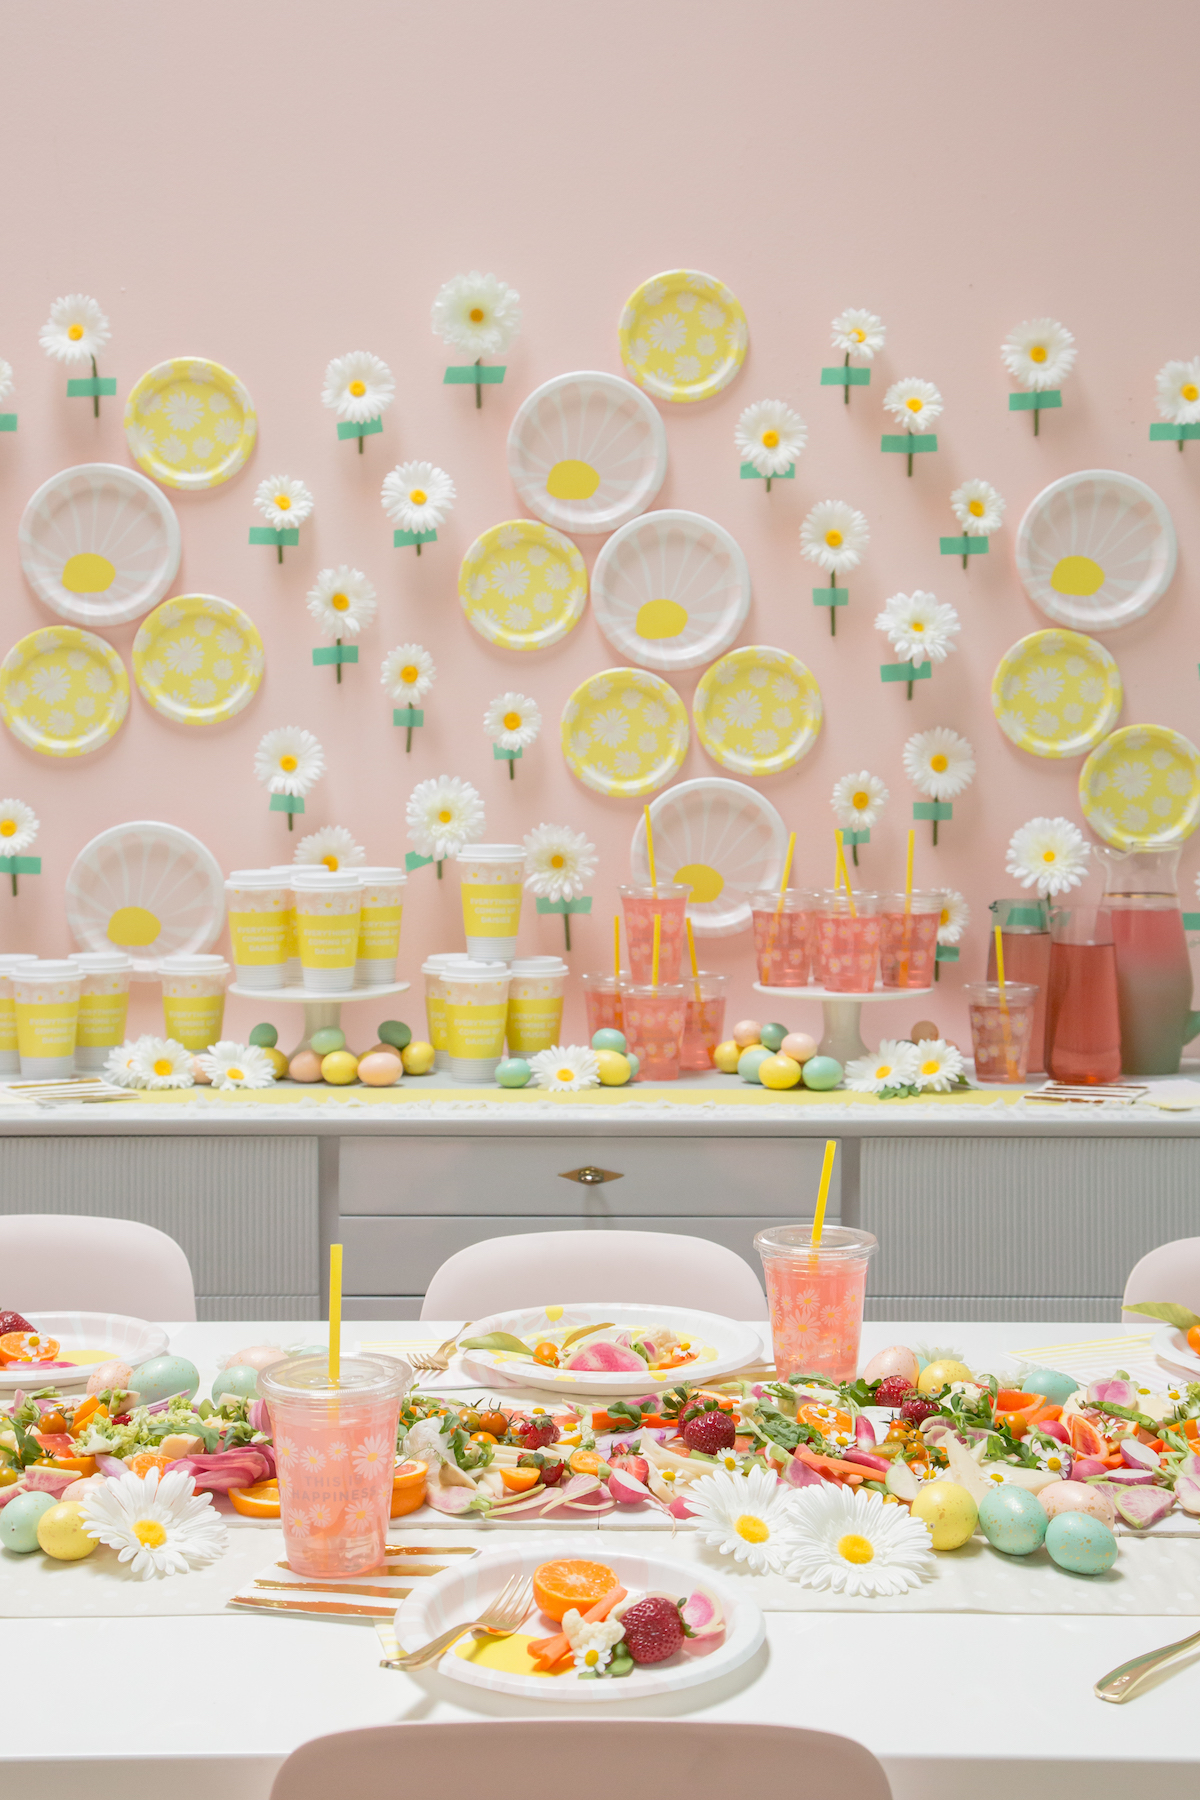 Target Oh Joy Party supplies